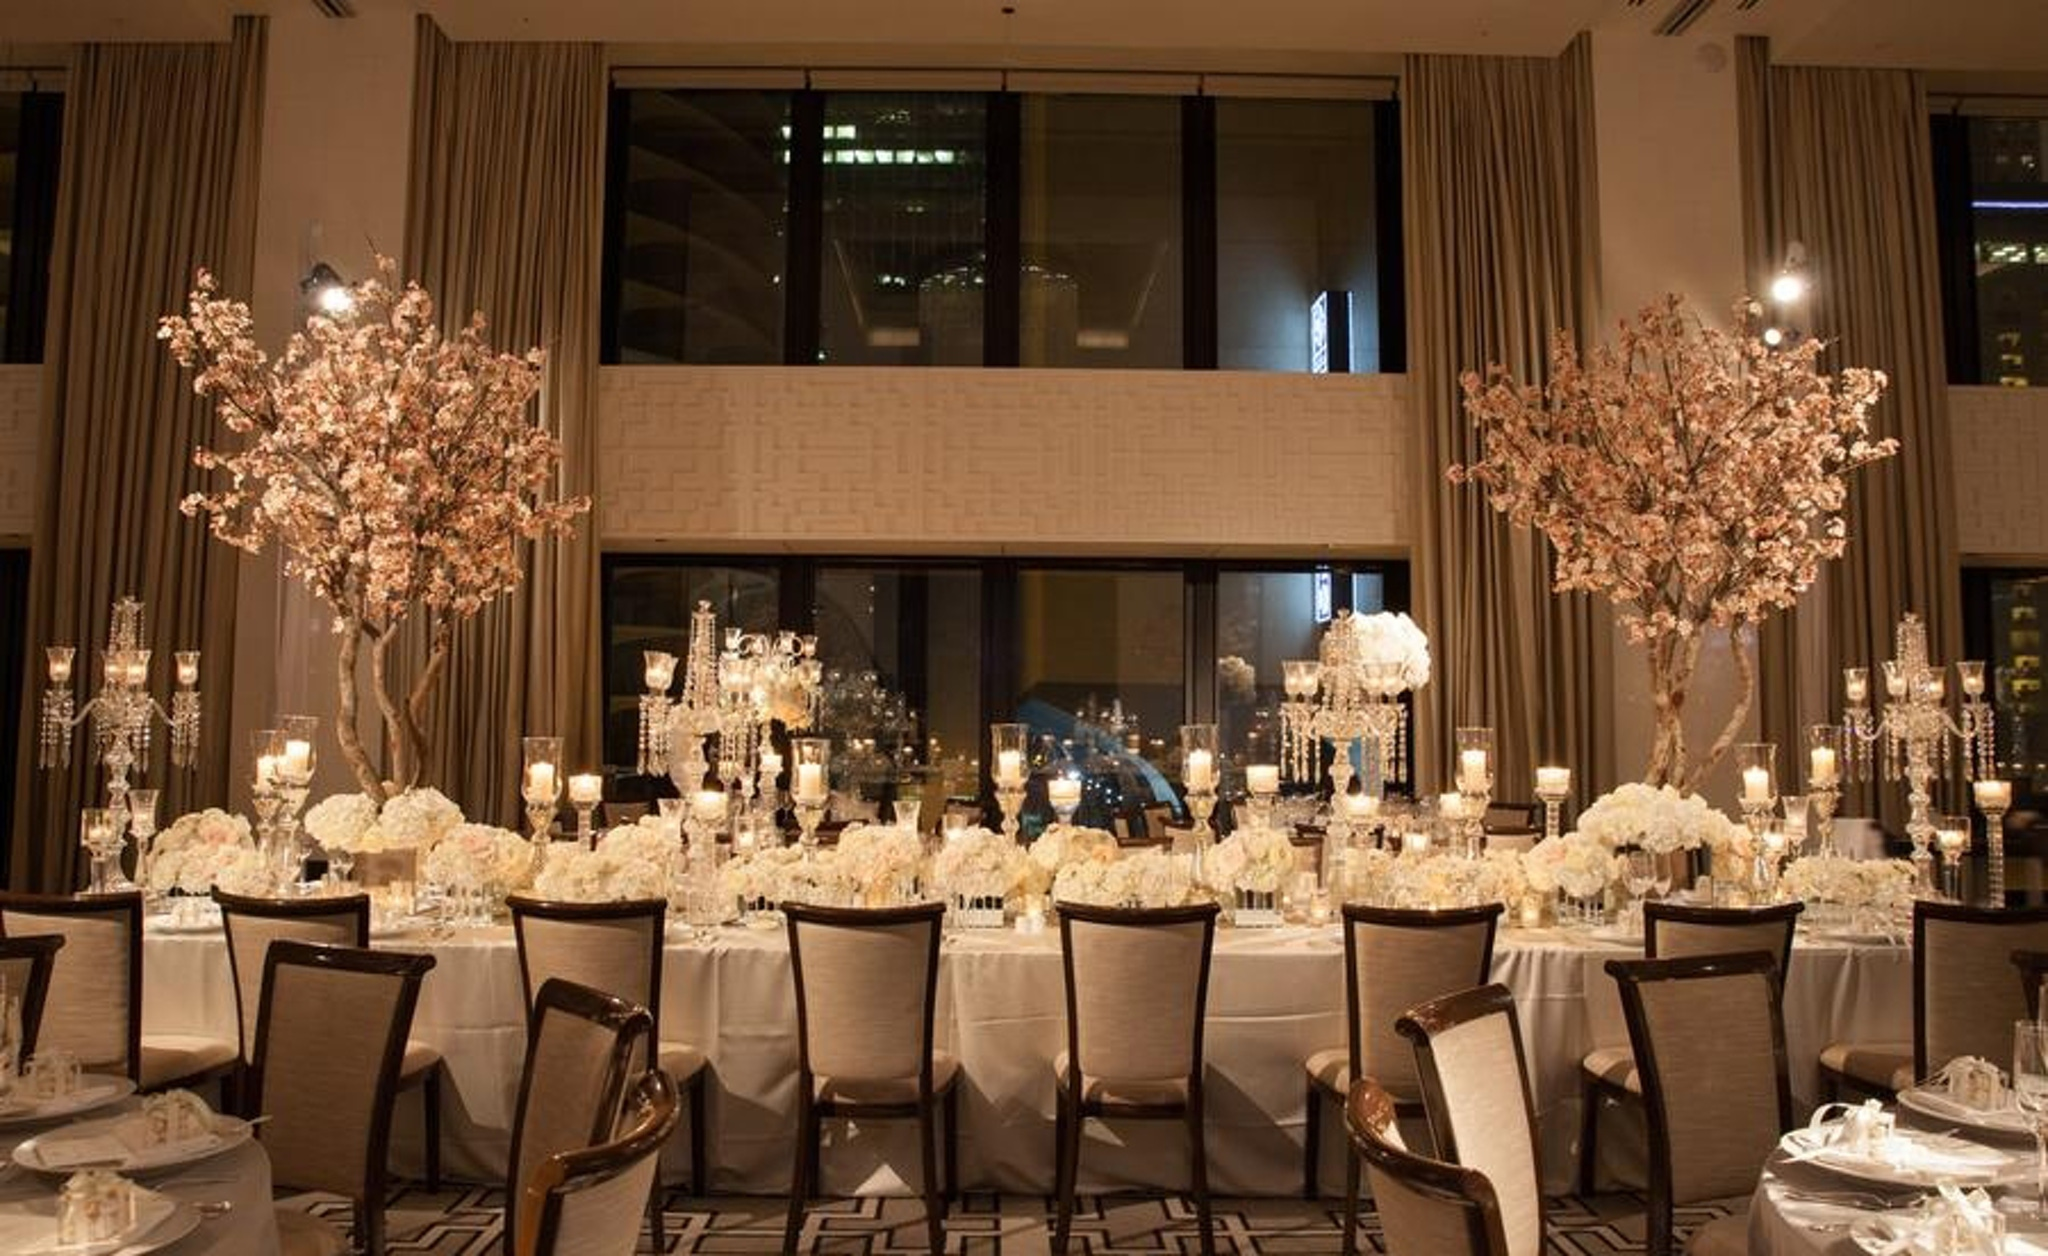 Chicago Wedding and Event Planners - Lola Event Productions